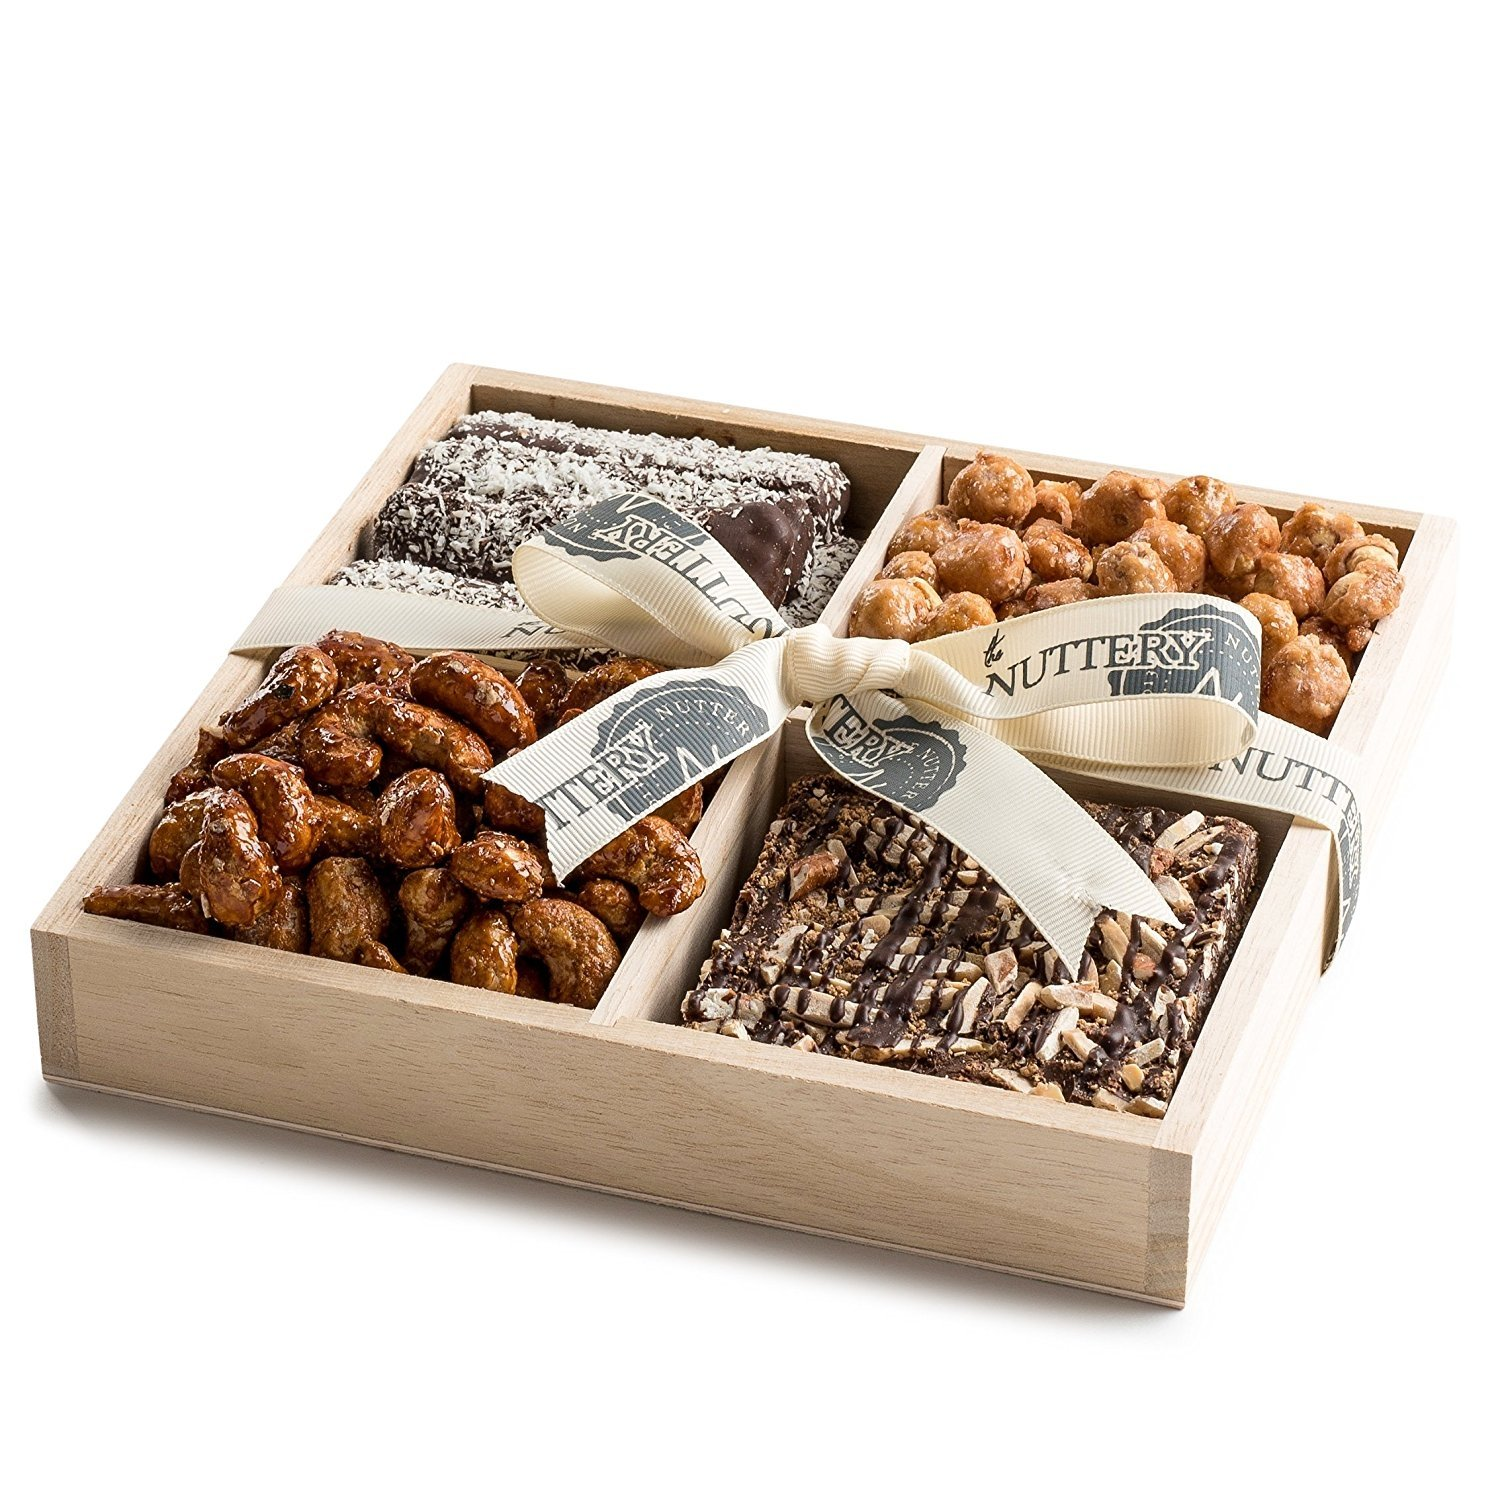 The Nuttery Nuts and Chocolate Gift Basket-Nuts and Chocolate Mix- Wooden Tray Sectional-Kosher Chocolate Gift Platter